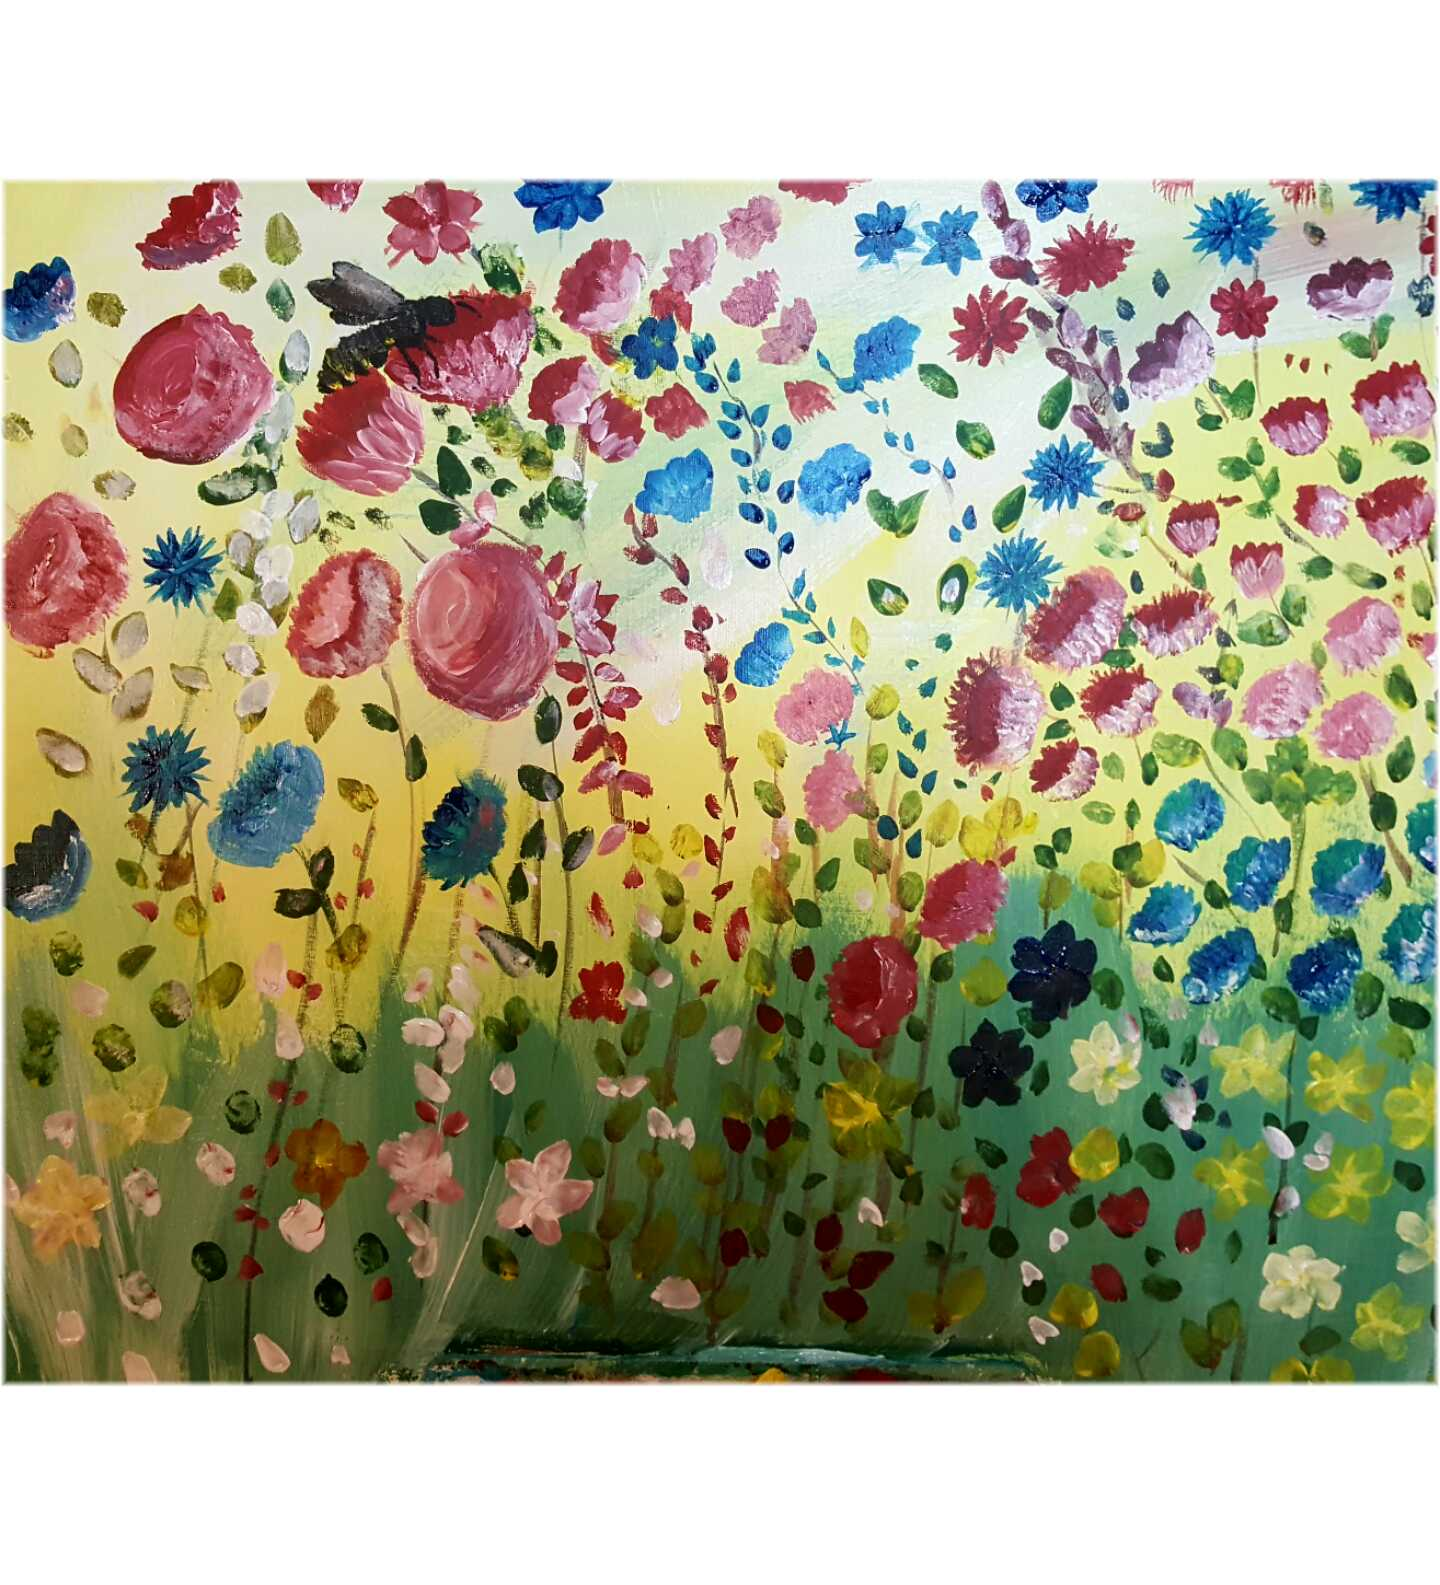 80x30 Painted Acrylic on Canvas. Flowers